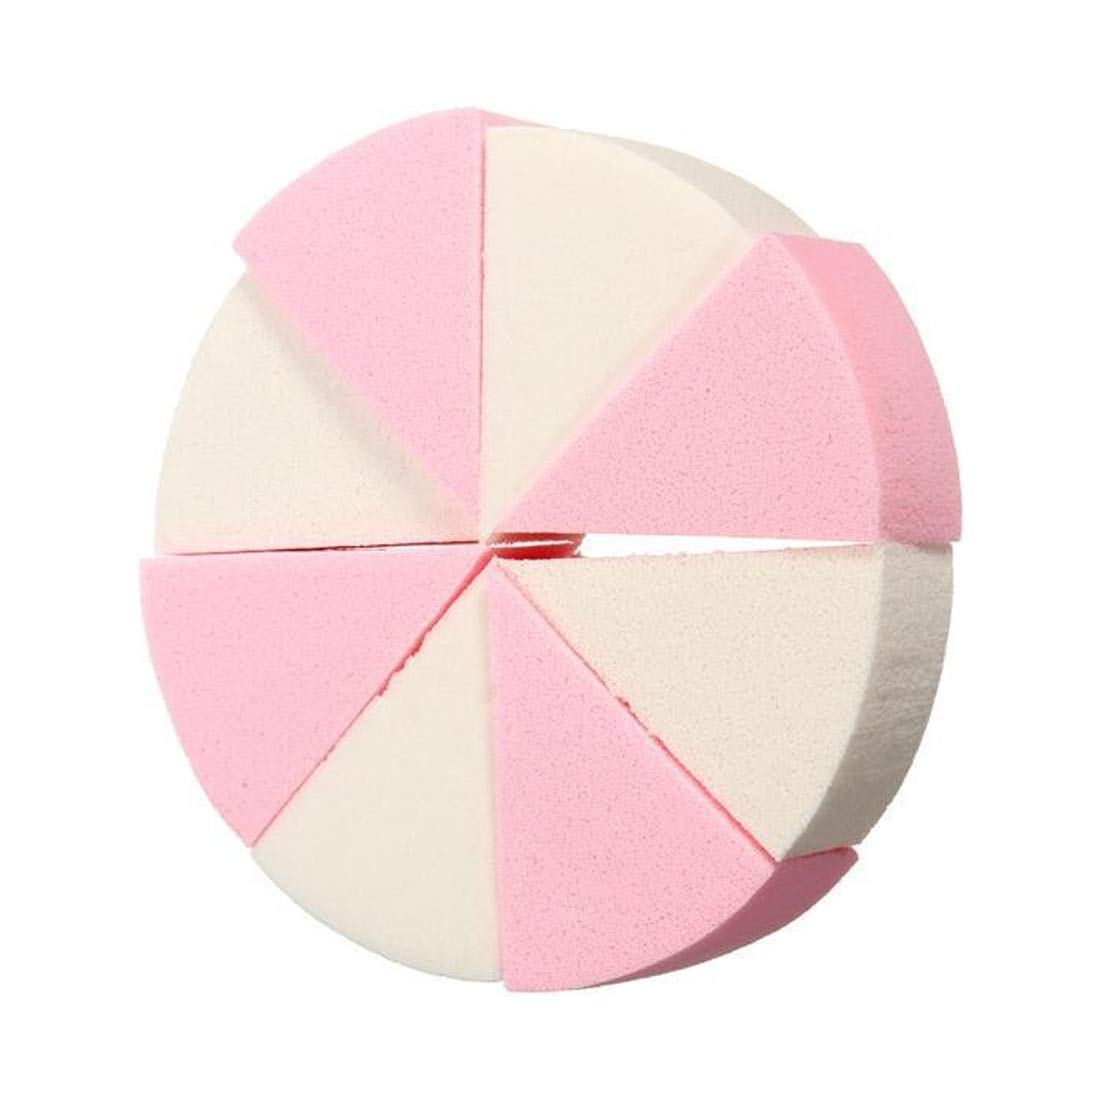 8PCS/Pack Triangle Shaped Candy Color Soft Magic Face Cleaning Pad Puff Cosmetic Puff Clean Sponge Wash Face Makeup Sponge uu19ee